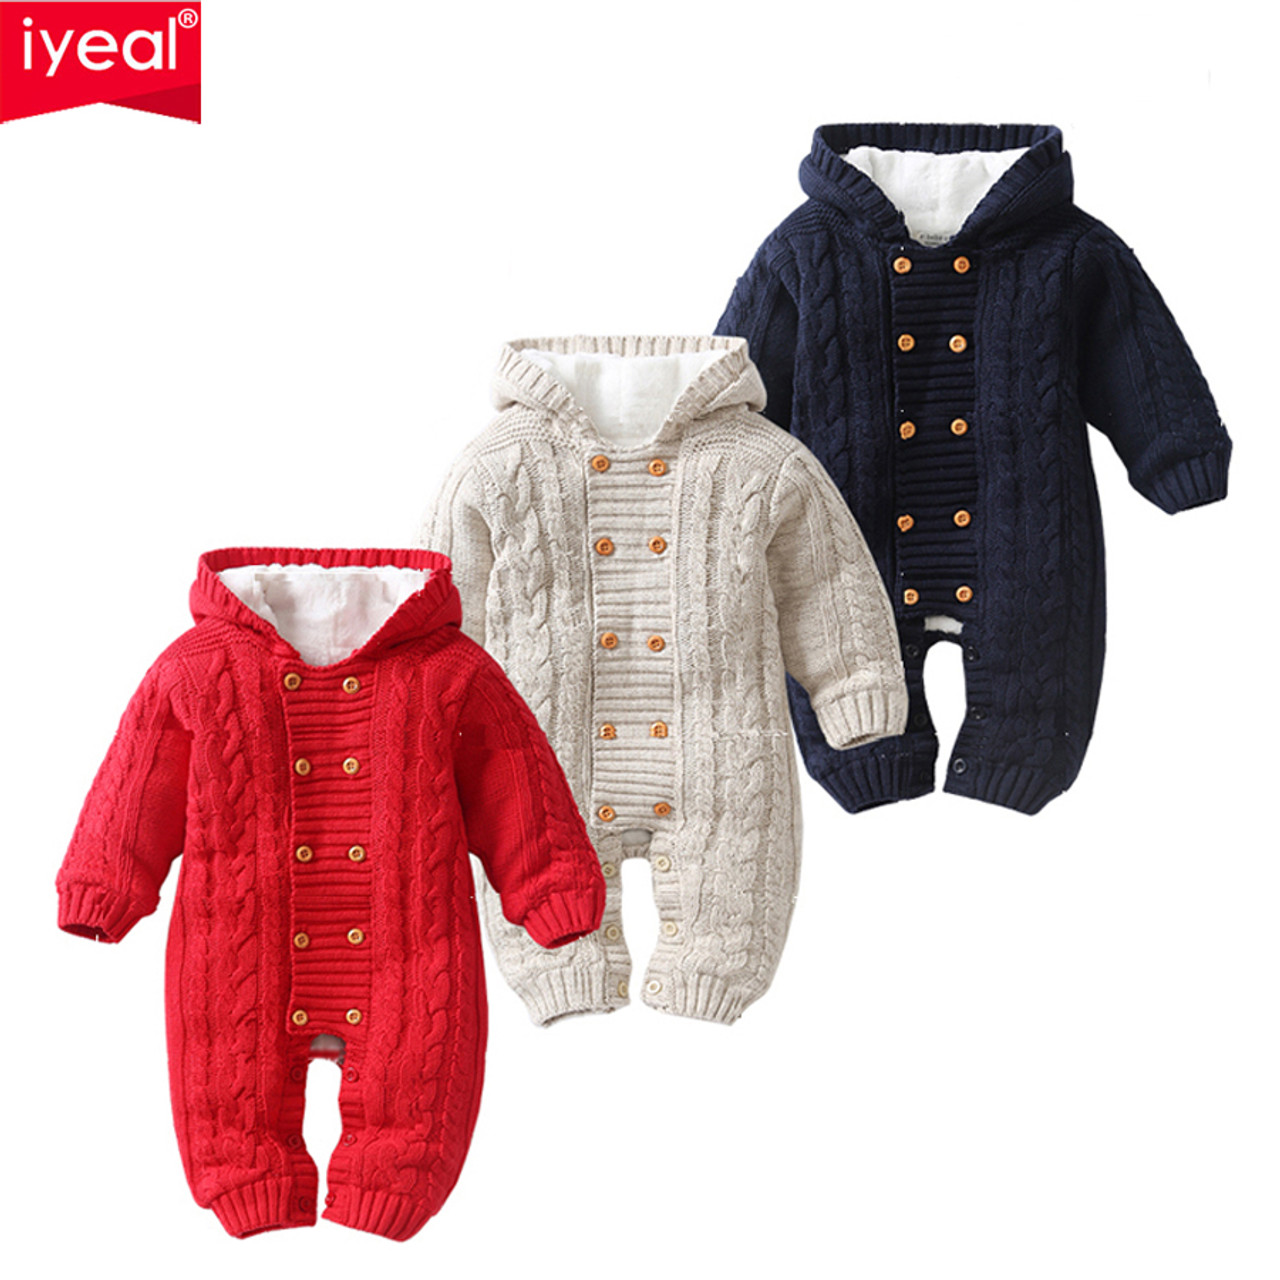 2d25b86718c1 ... IYEAL Thick Warm Infant Baby Rompers Winter Clothes Newborn Baby Boy  Girl Knitted Sweater Jumpsuit Hooded ...